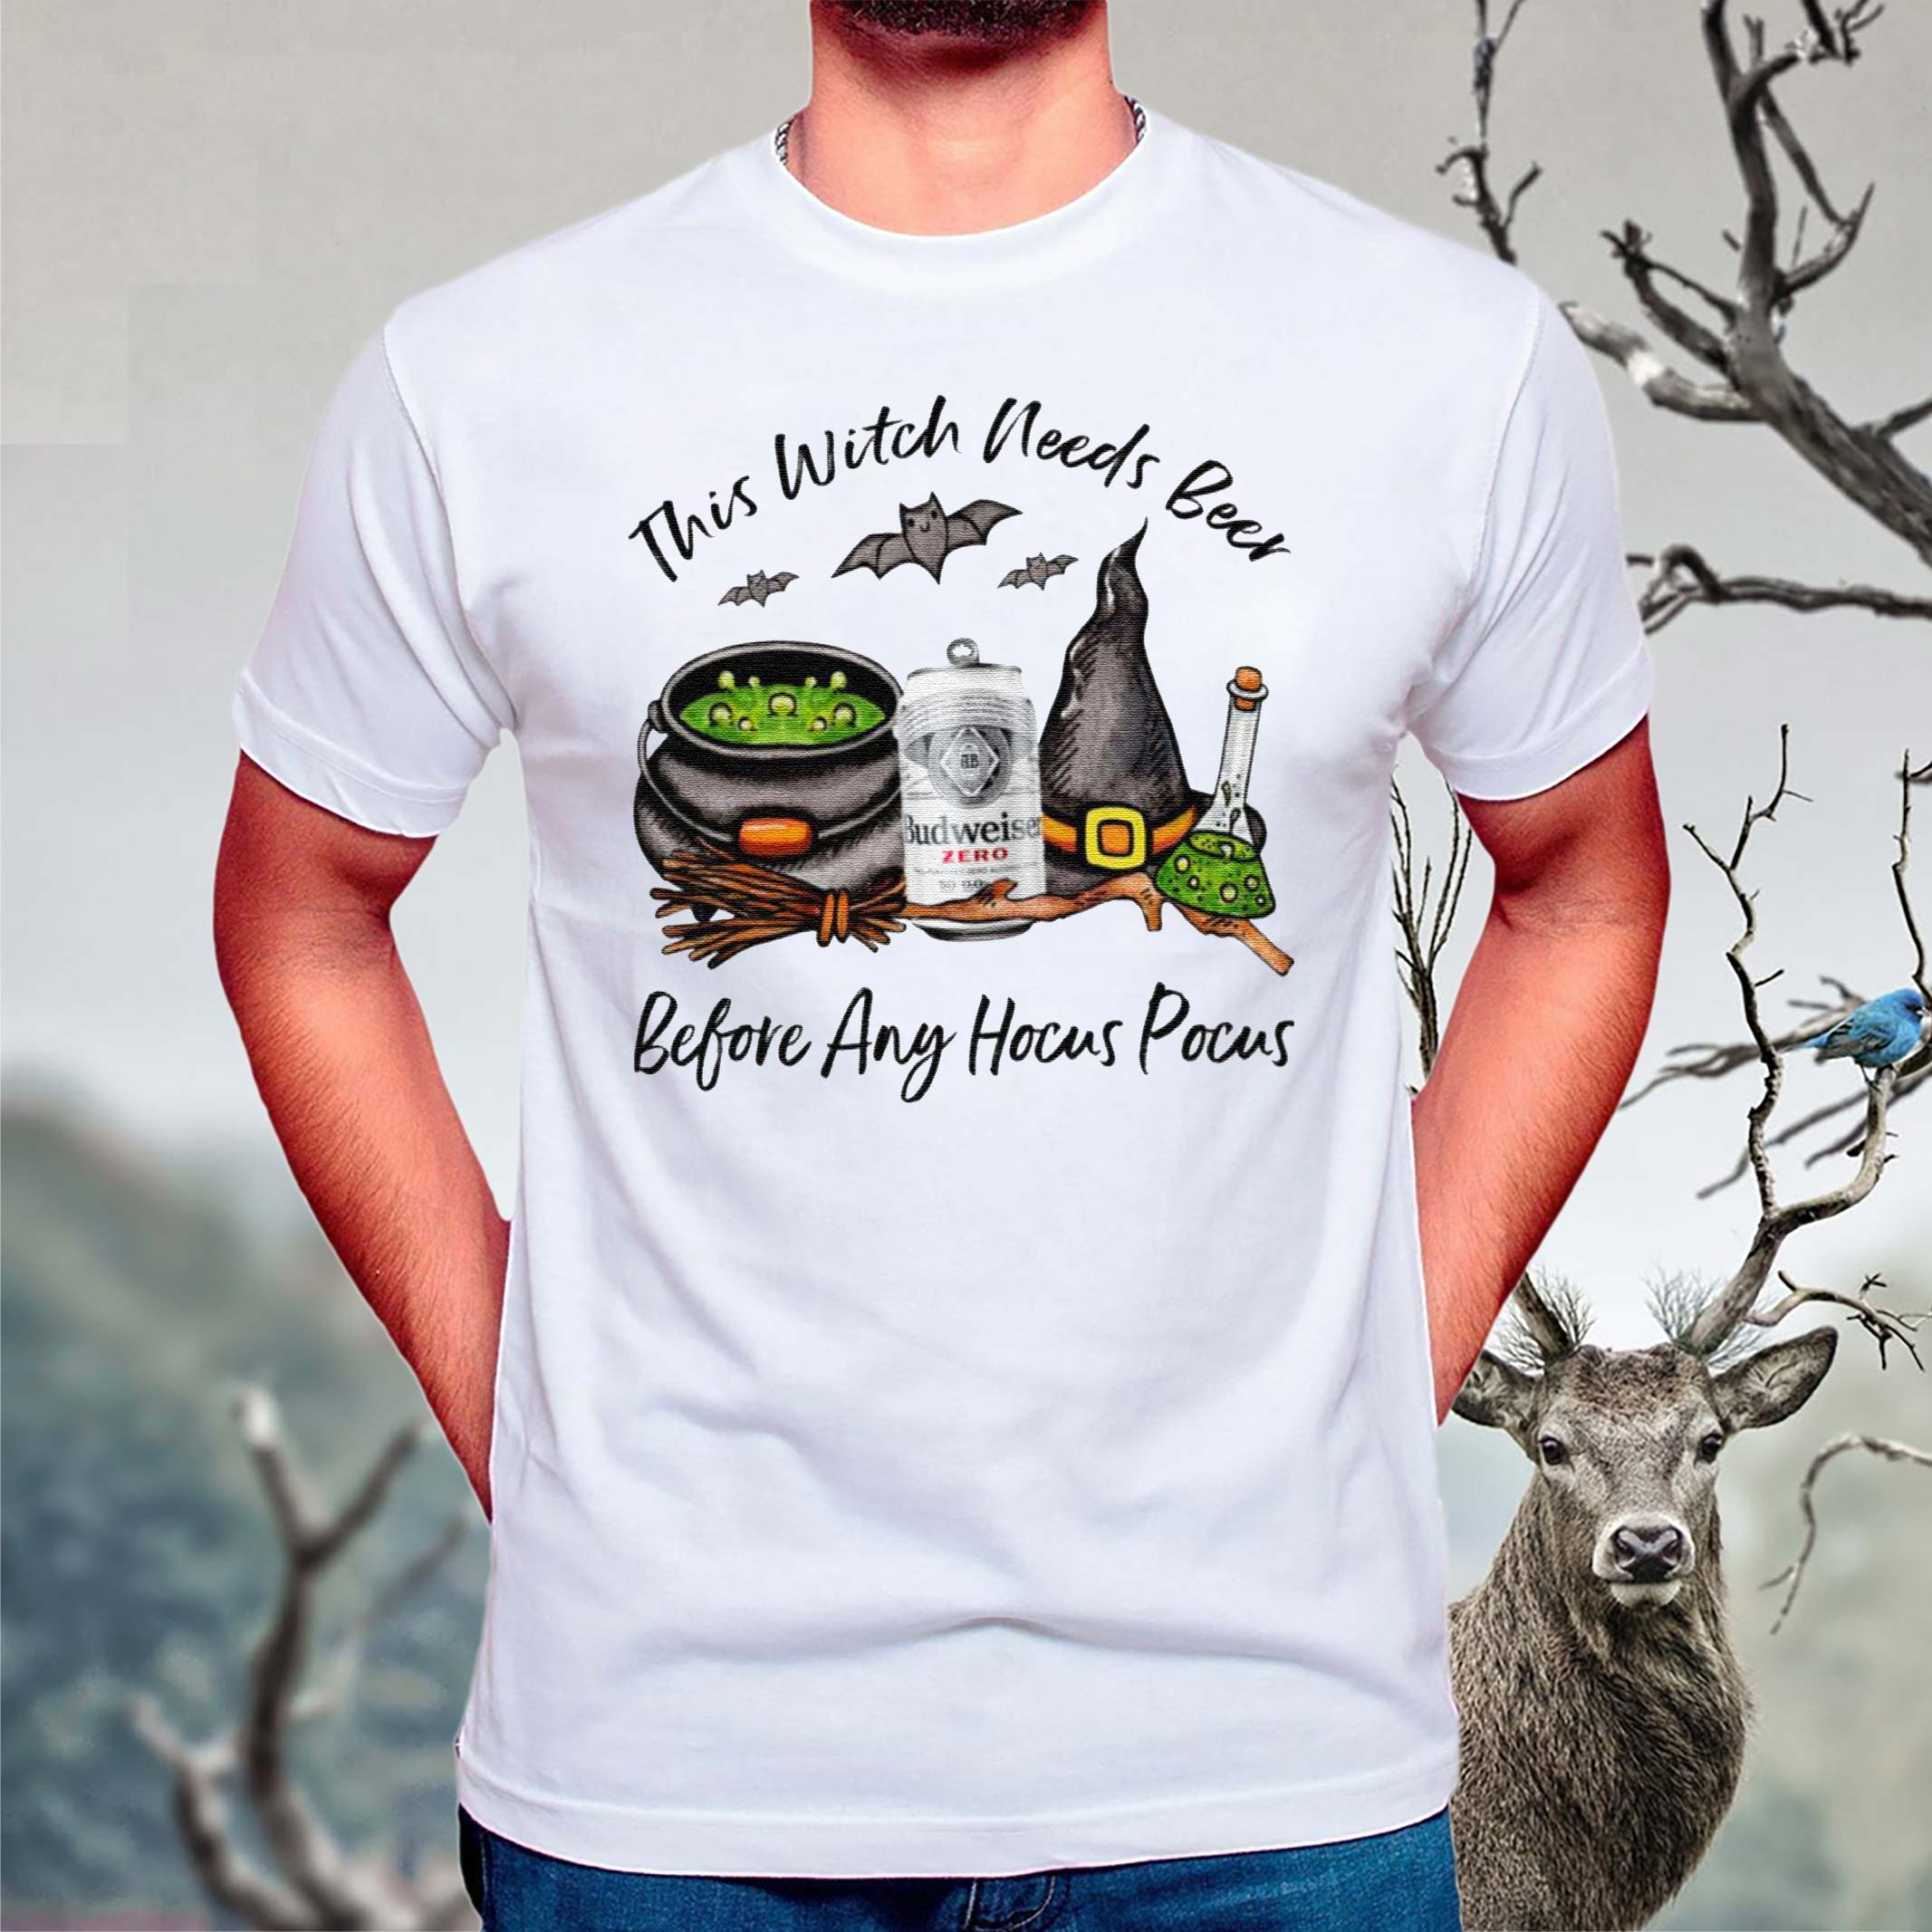 Budweiser-Zero-Can-This-Witch-Needs-Beer-Before-Any-Hocus-Pocus-T-Shirts